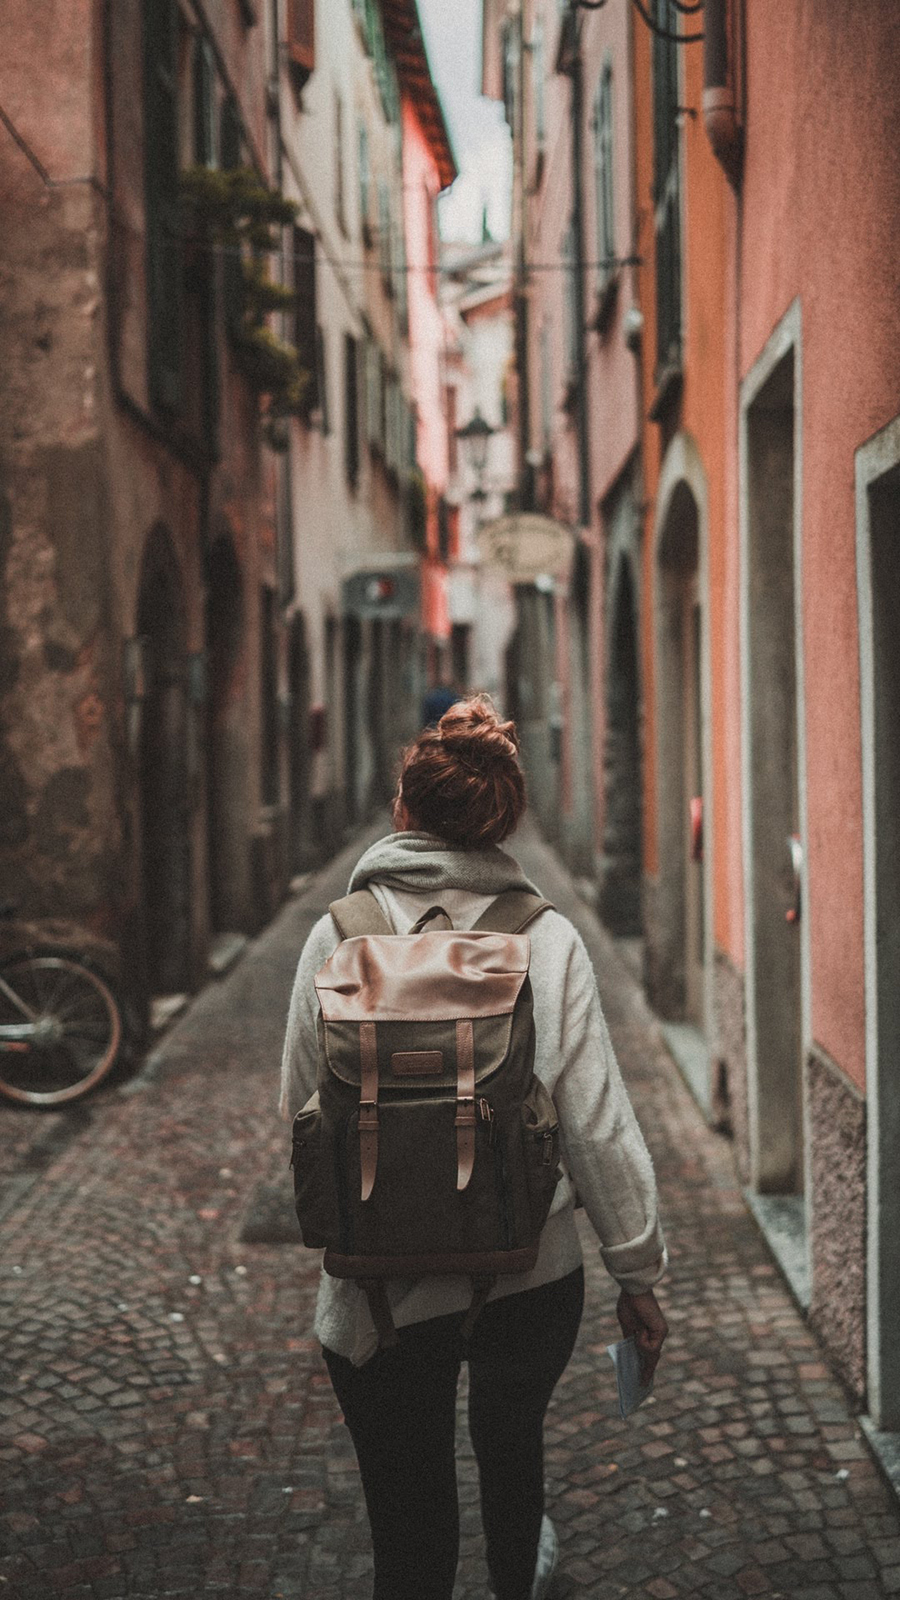 People Travel Wallpaper – Travel Wallpapers Free Download For You Device